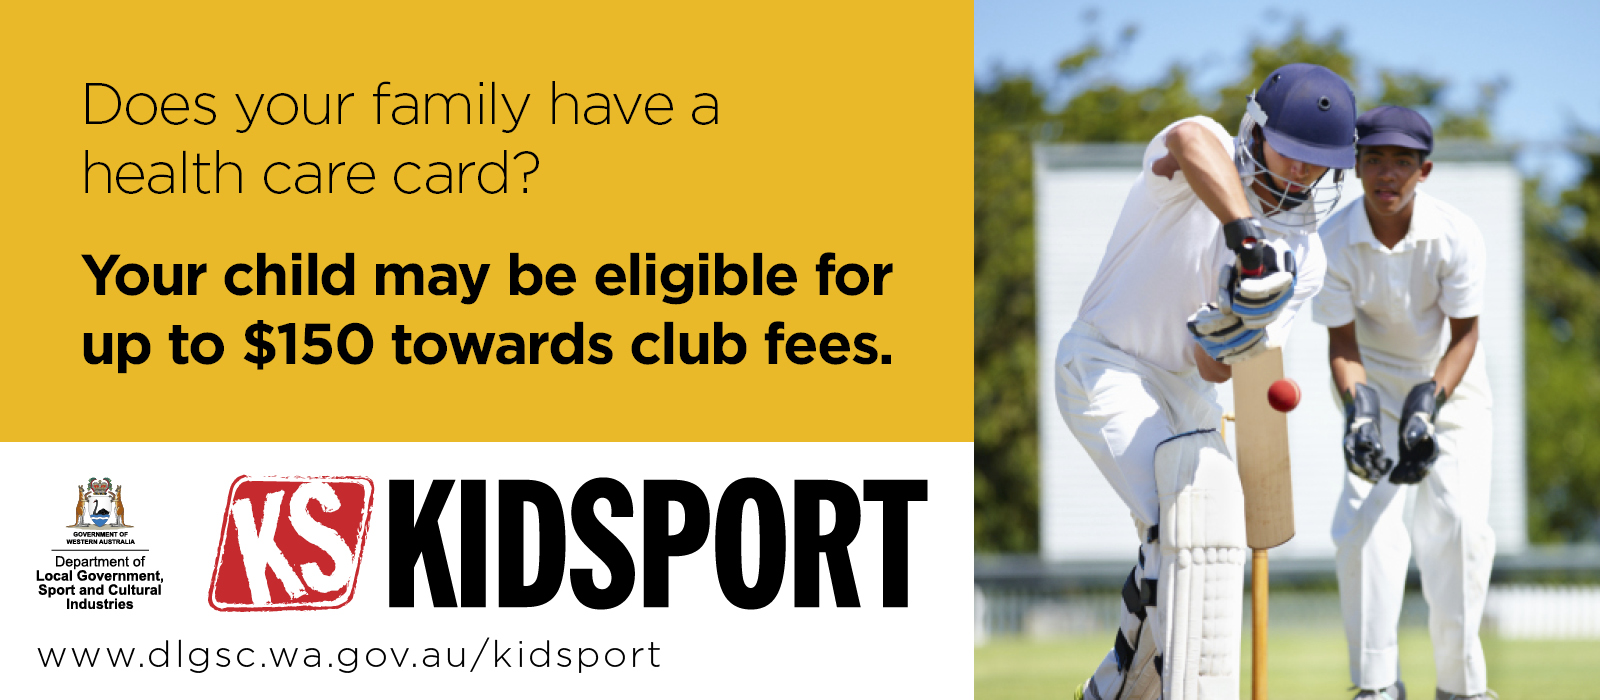 KidSport  - Does your family have a health care card